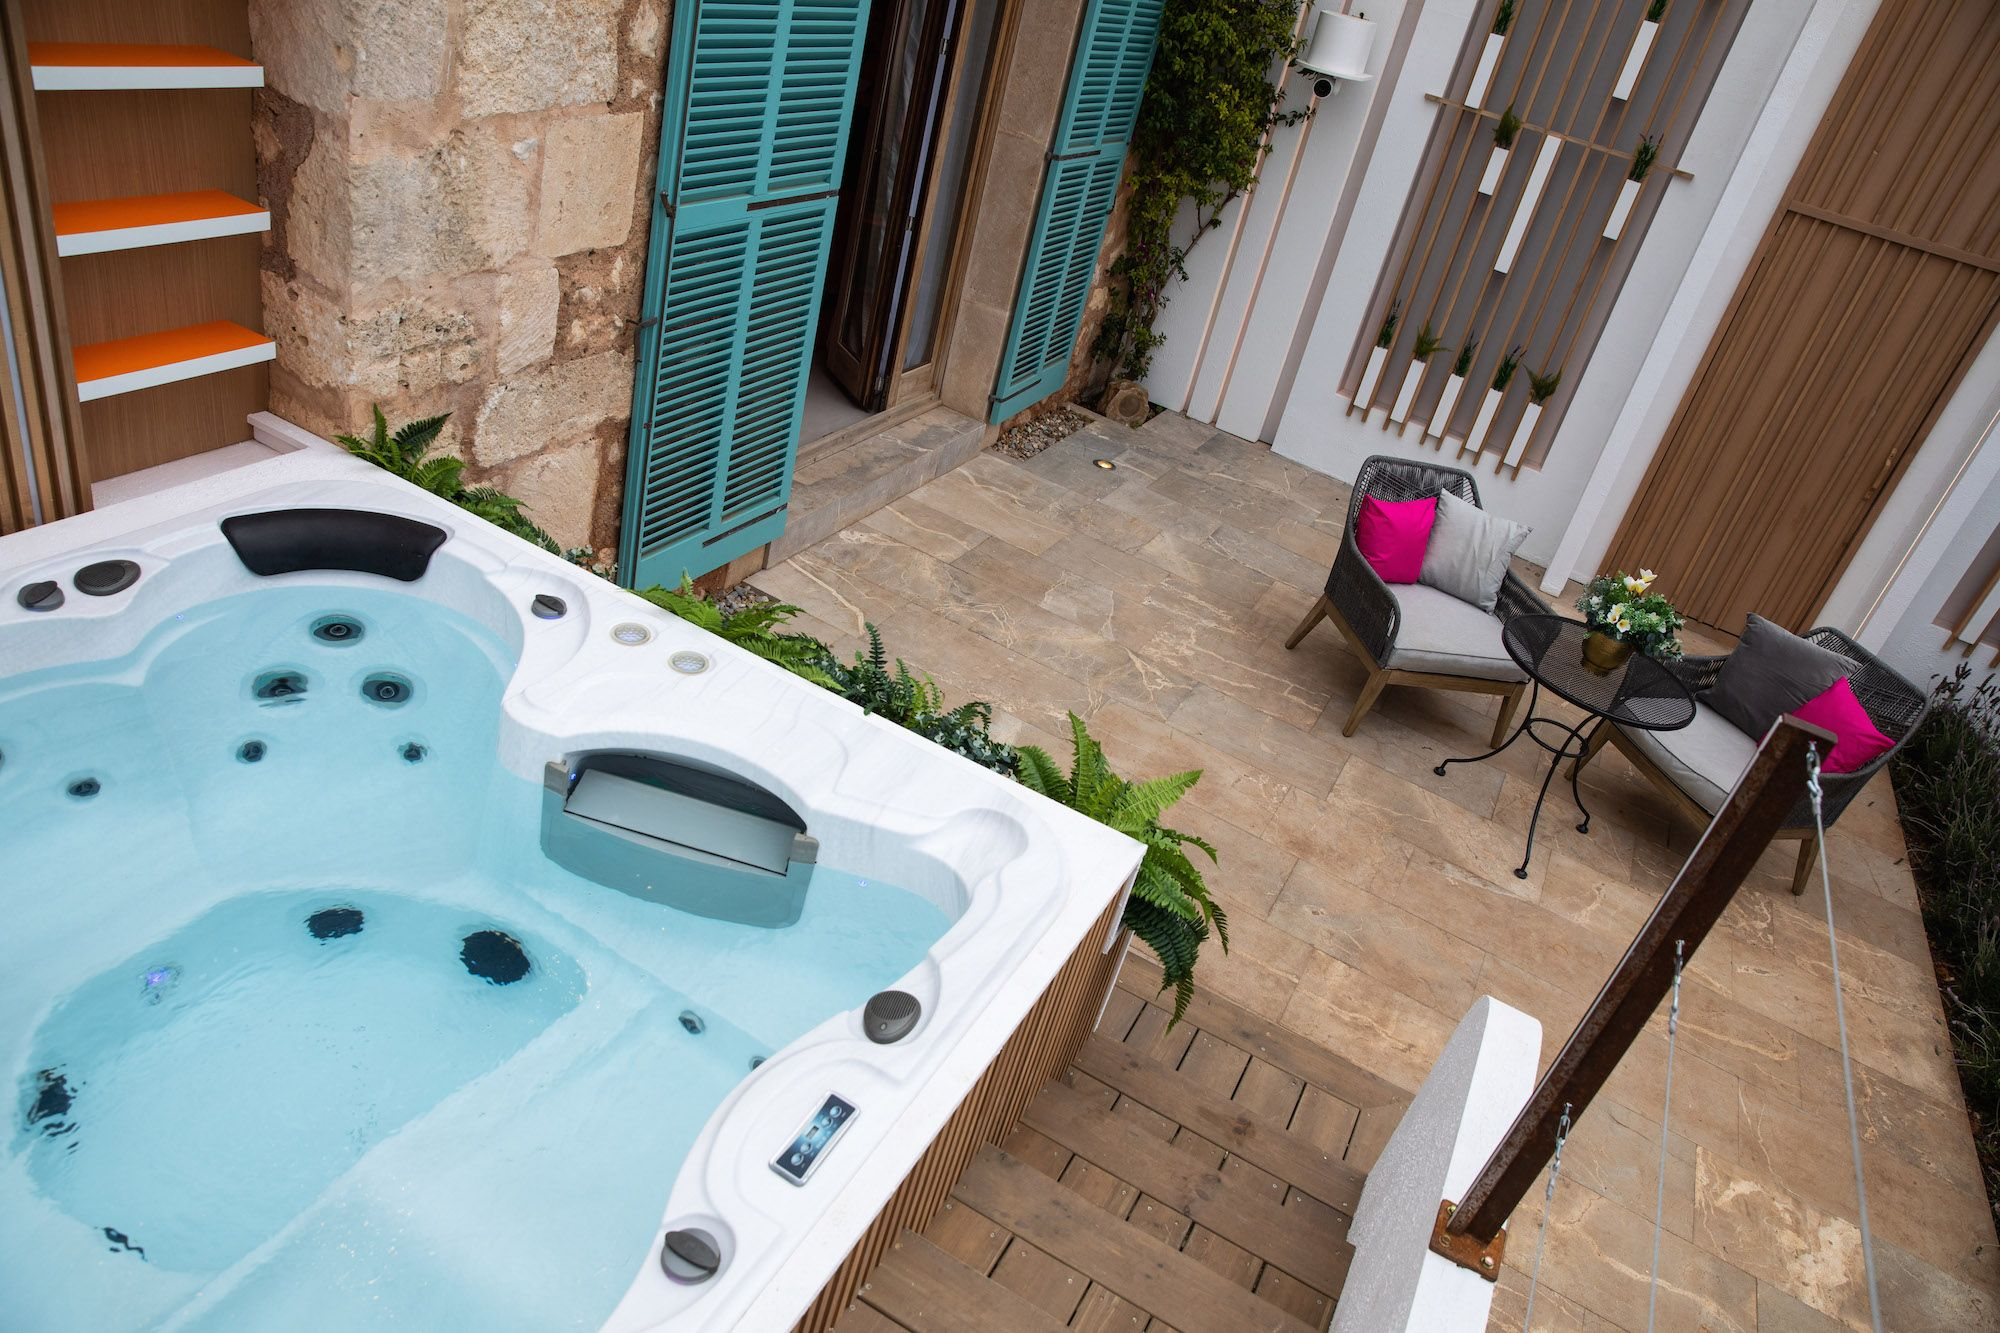 Image may contain: Love Island villa, Love Island, 2019, location, pictures, inside, Sant Llorenç des Cardassar, Majorca, first look, Home Decor, Tub, Hot Tub, Jacuzzi